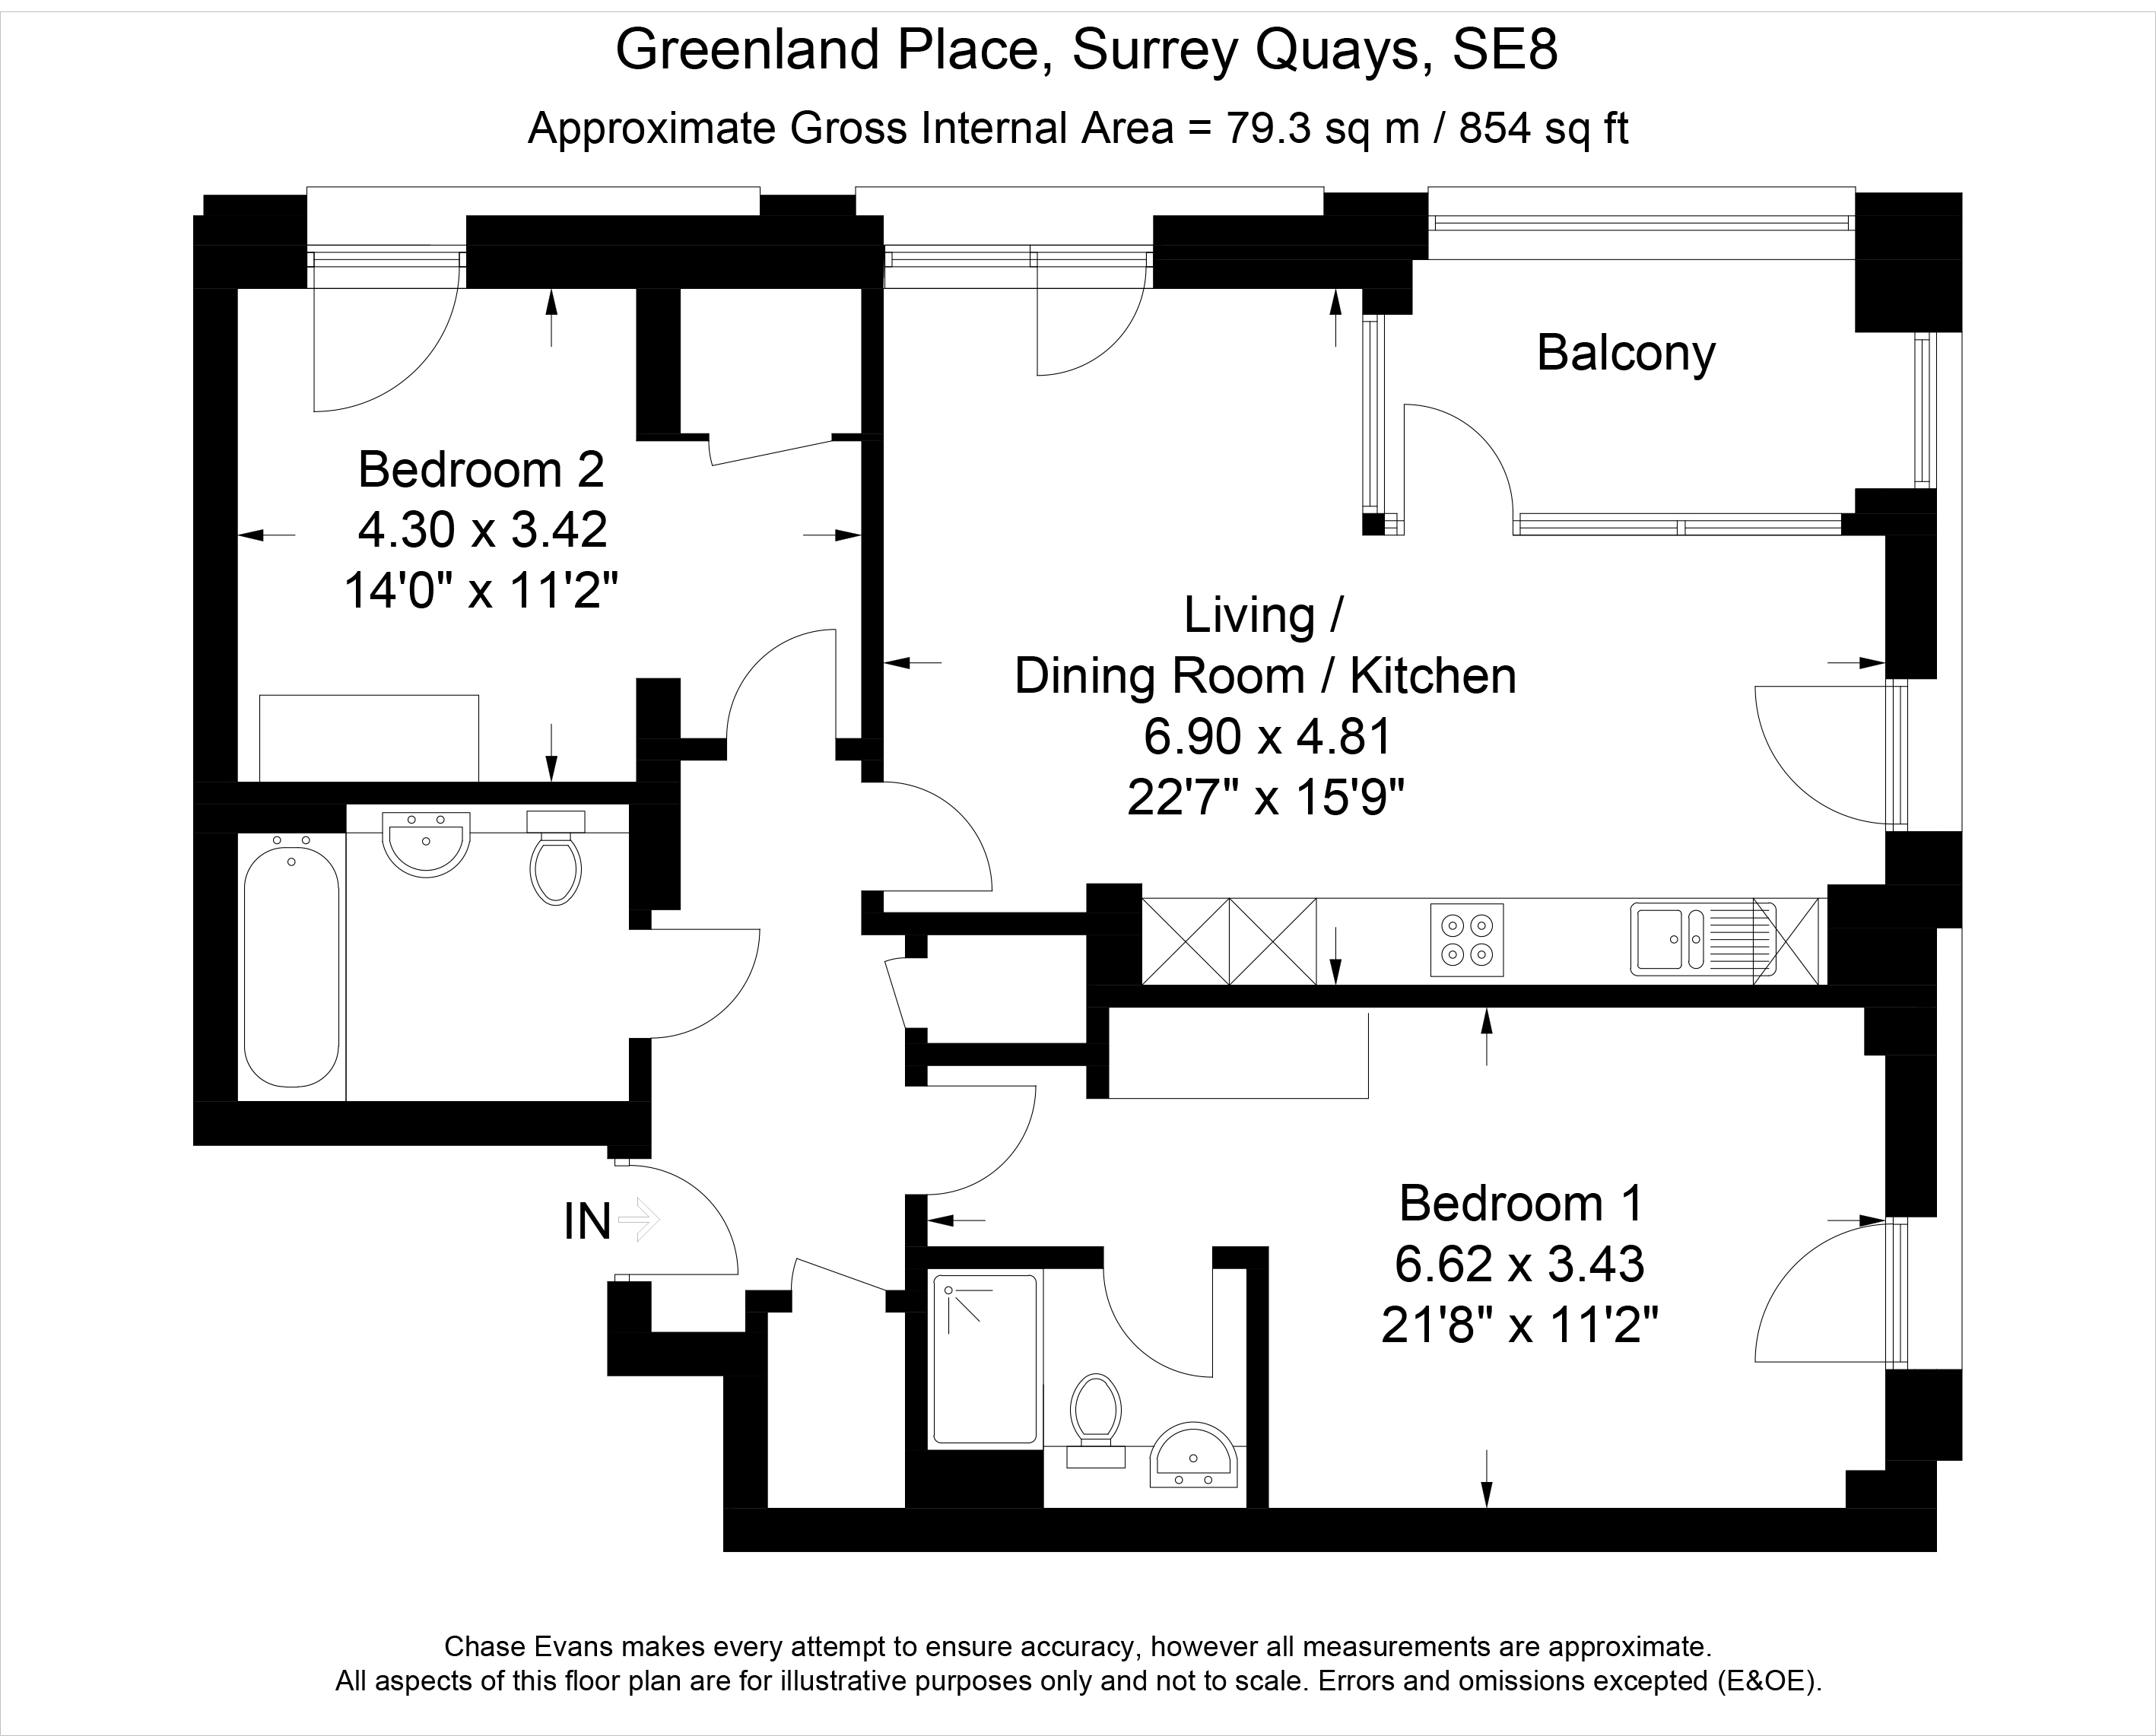 Greenland Place Oslo Tower Surrey Quays Se8 2 Bedroom